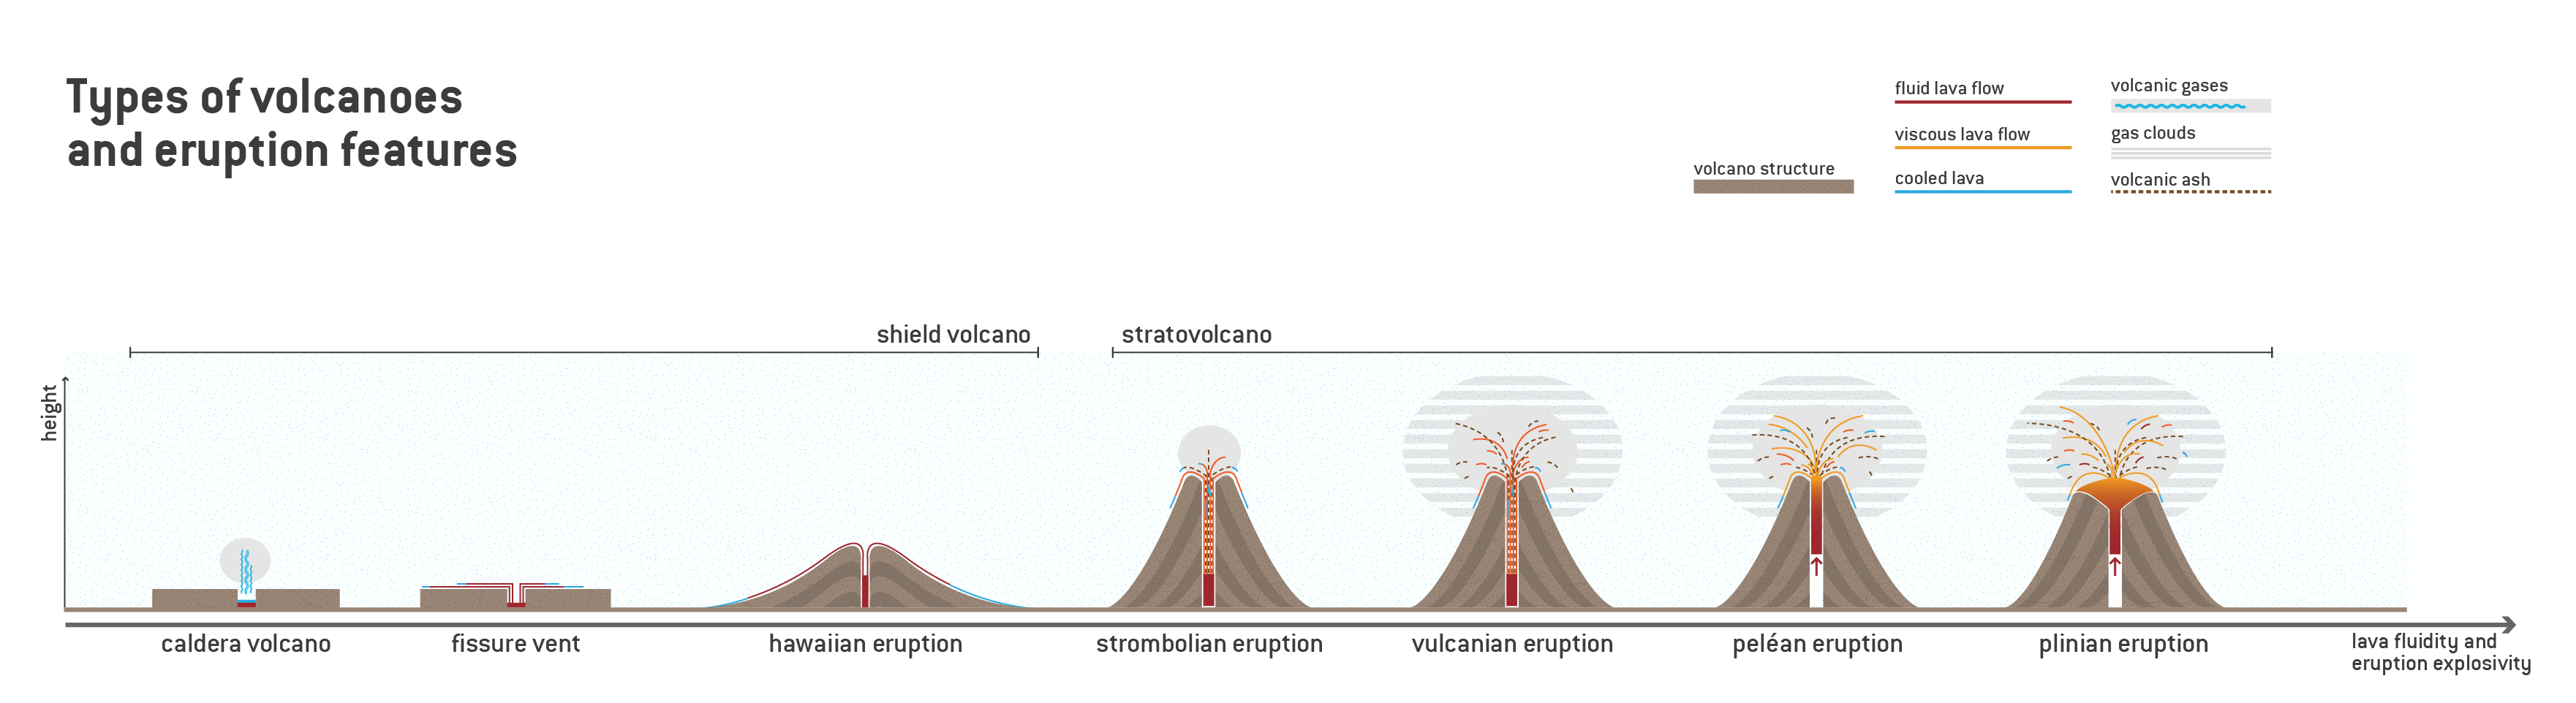 Filetypes of volcanoes and eruption featuresg wikimedia commons filetypes of volcanoes and eruption featuresg ccuart Choice Image